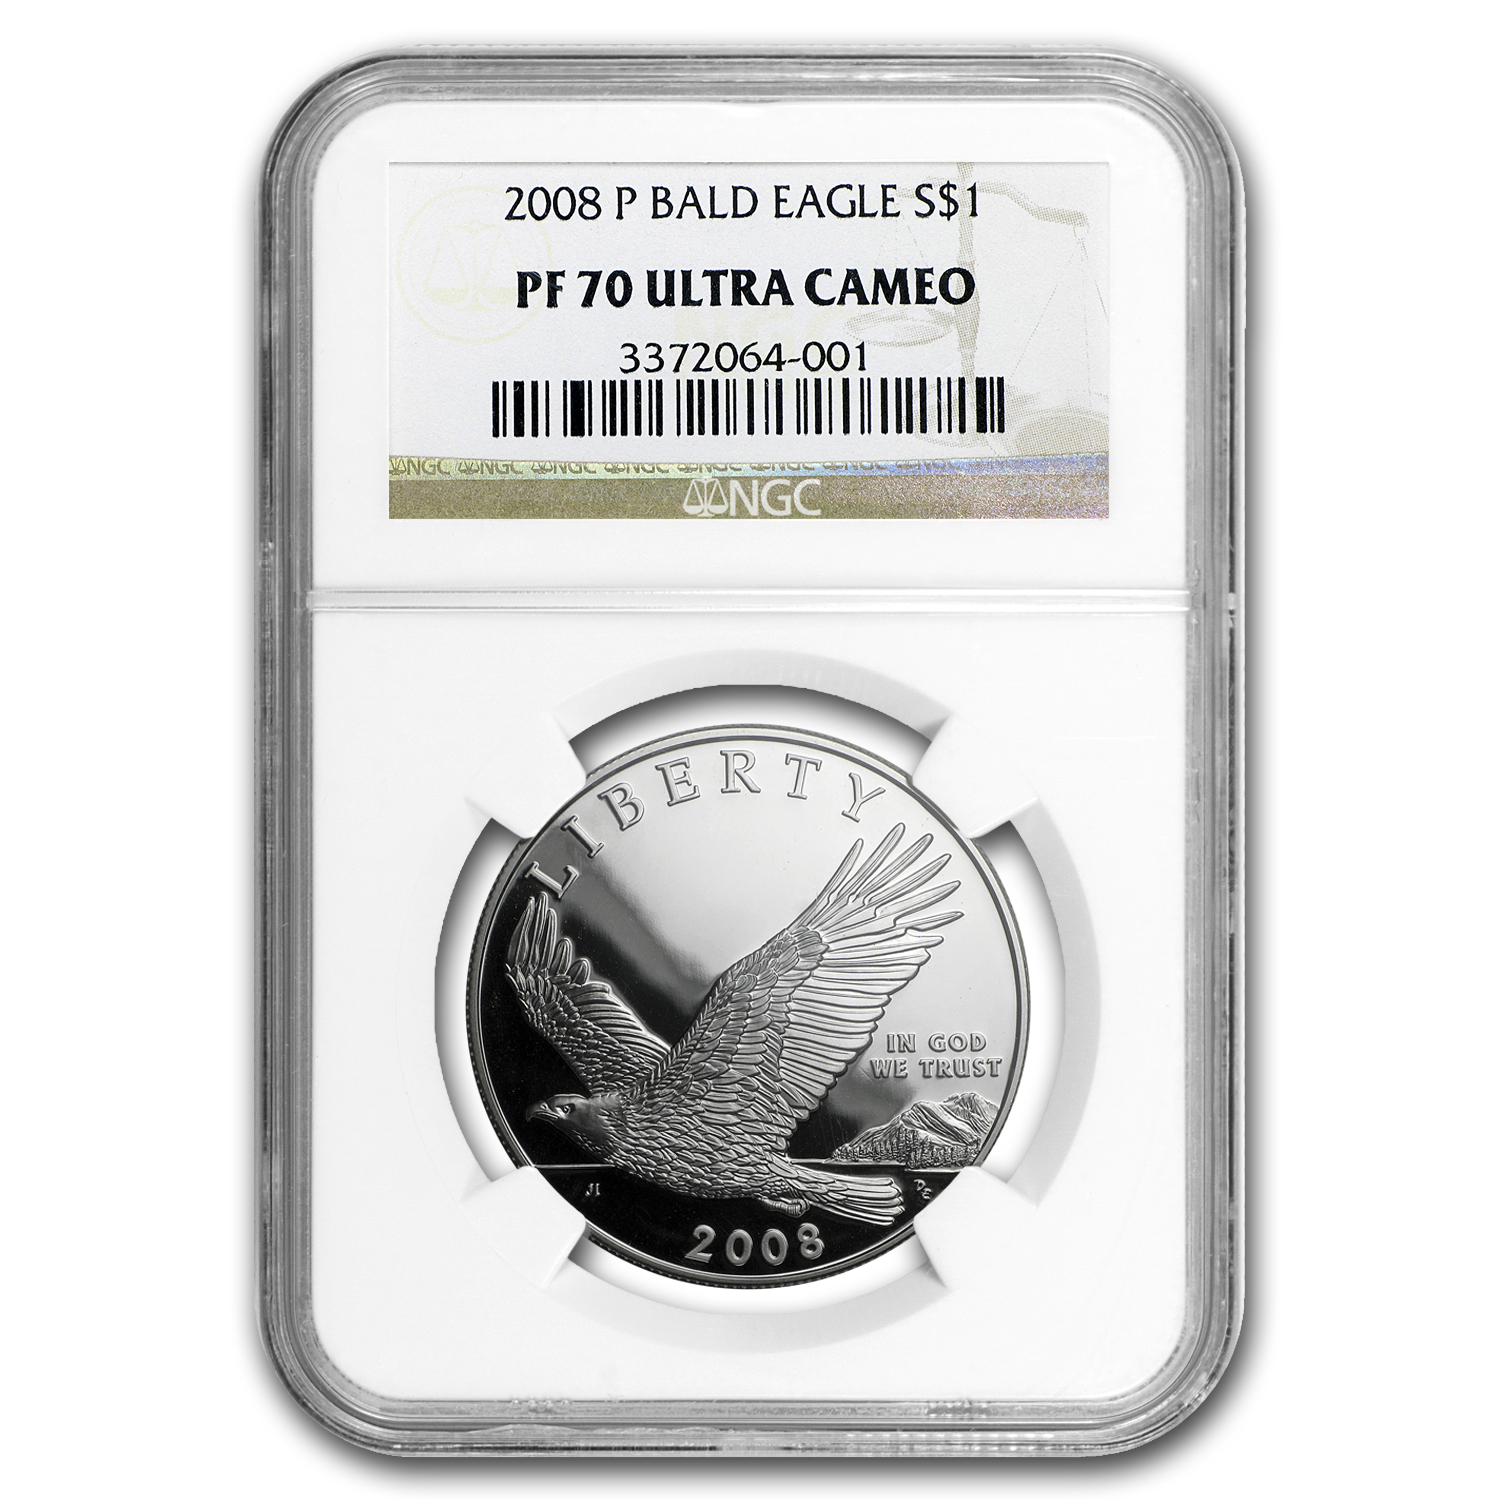 2008-P Bald Eagle $1 Silver Commem PF-70 NGC